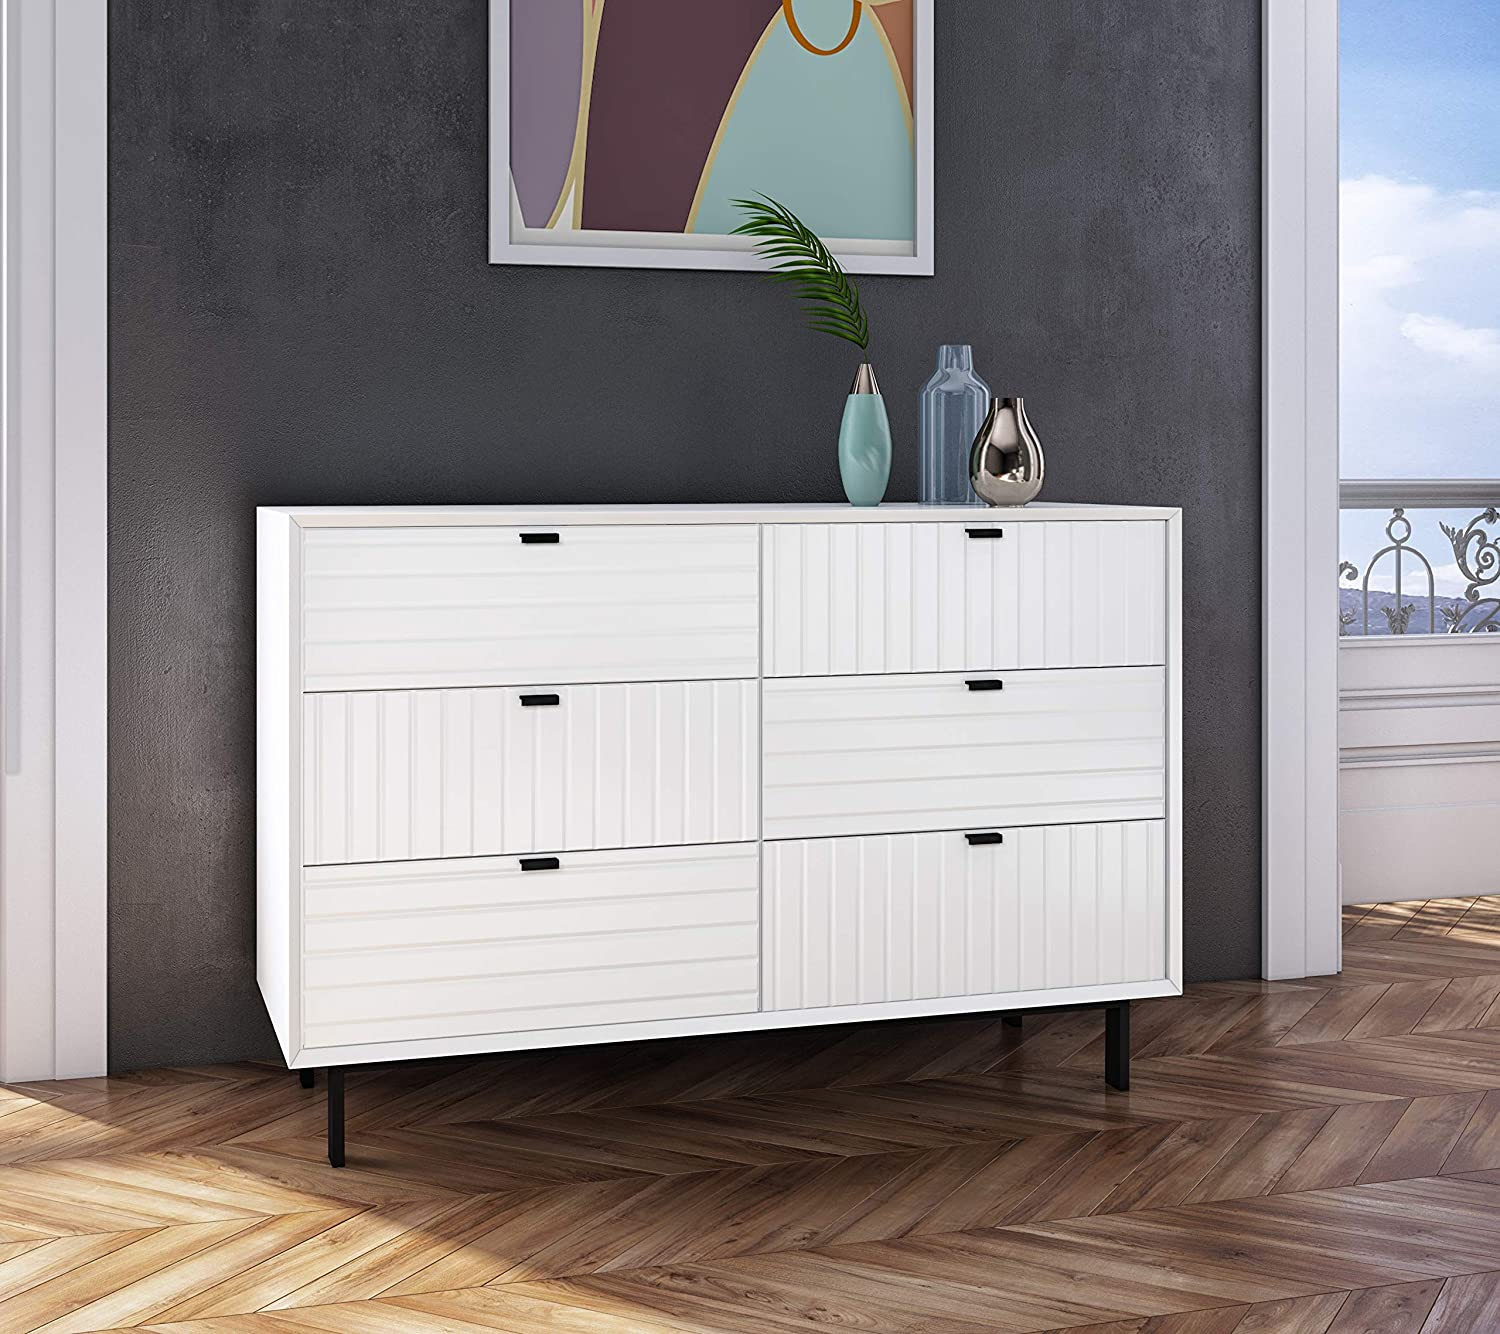 Limari Home Artesia Collection Modern Style Bedroom Matte 6 Drawer Double Dresser With Metal Legs Handles White Furniture Decor Amazon Com